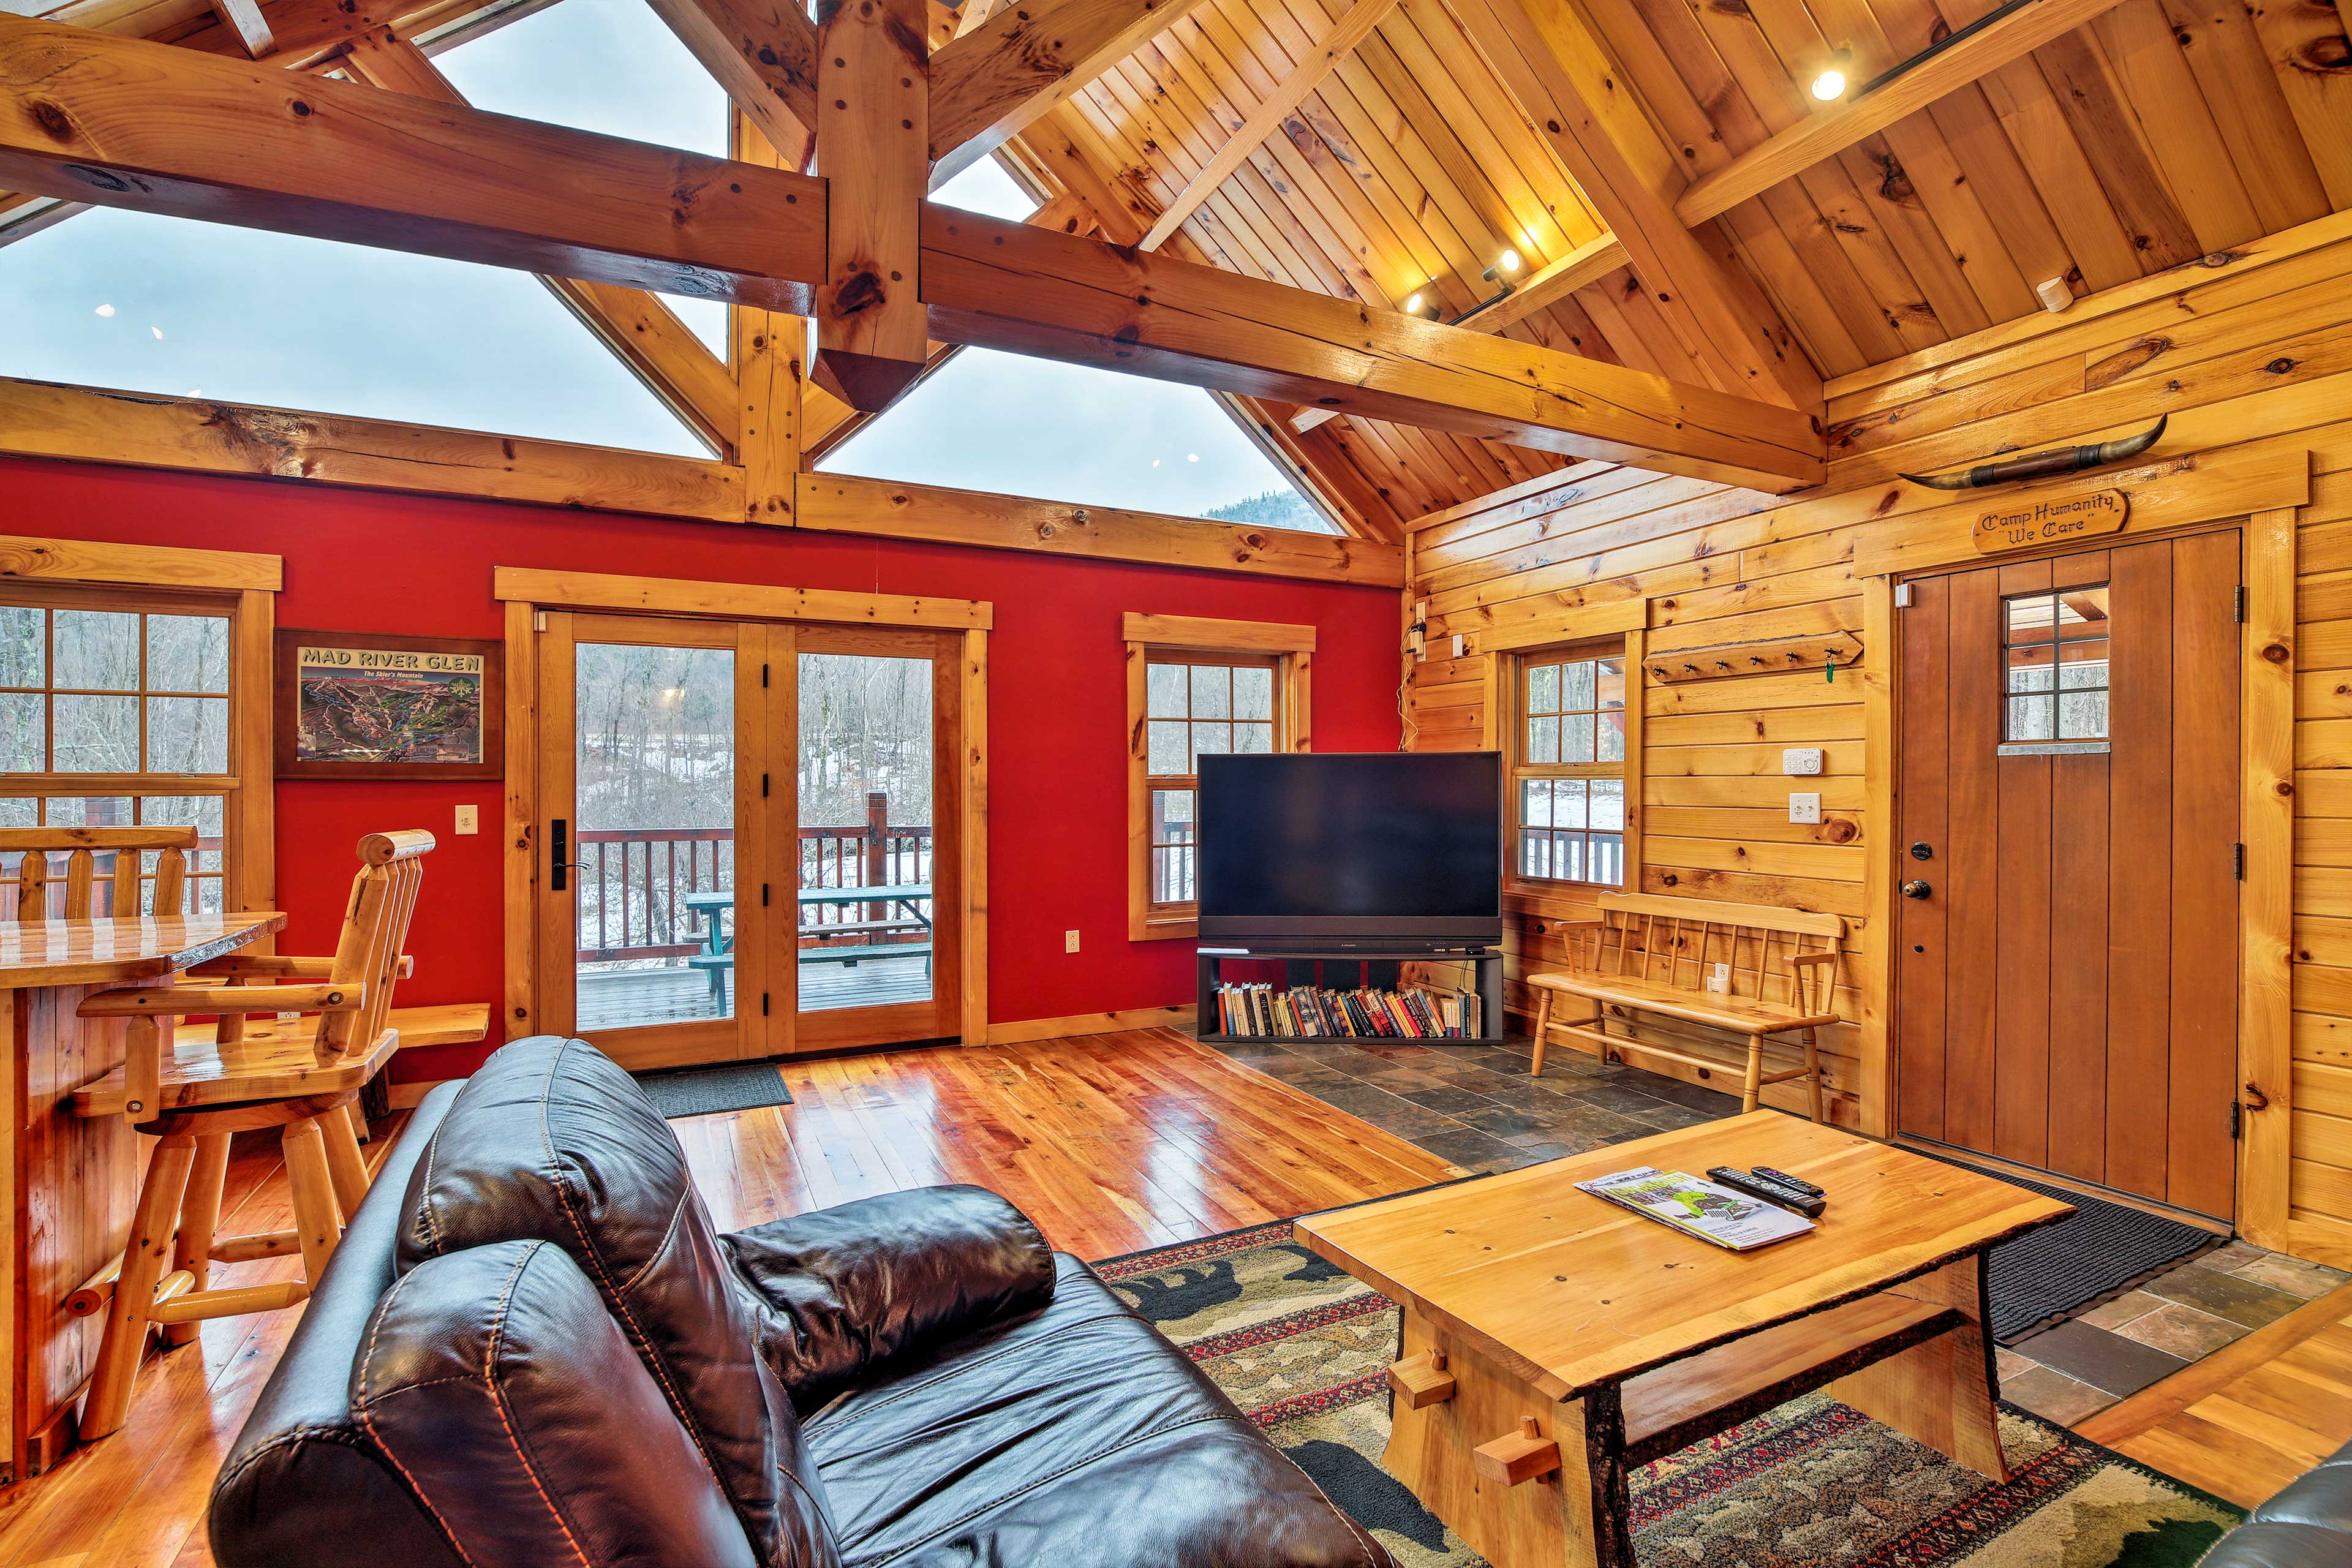 Venture to Vermont and stay at this cabin!